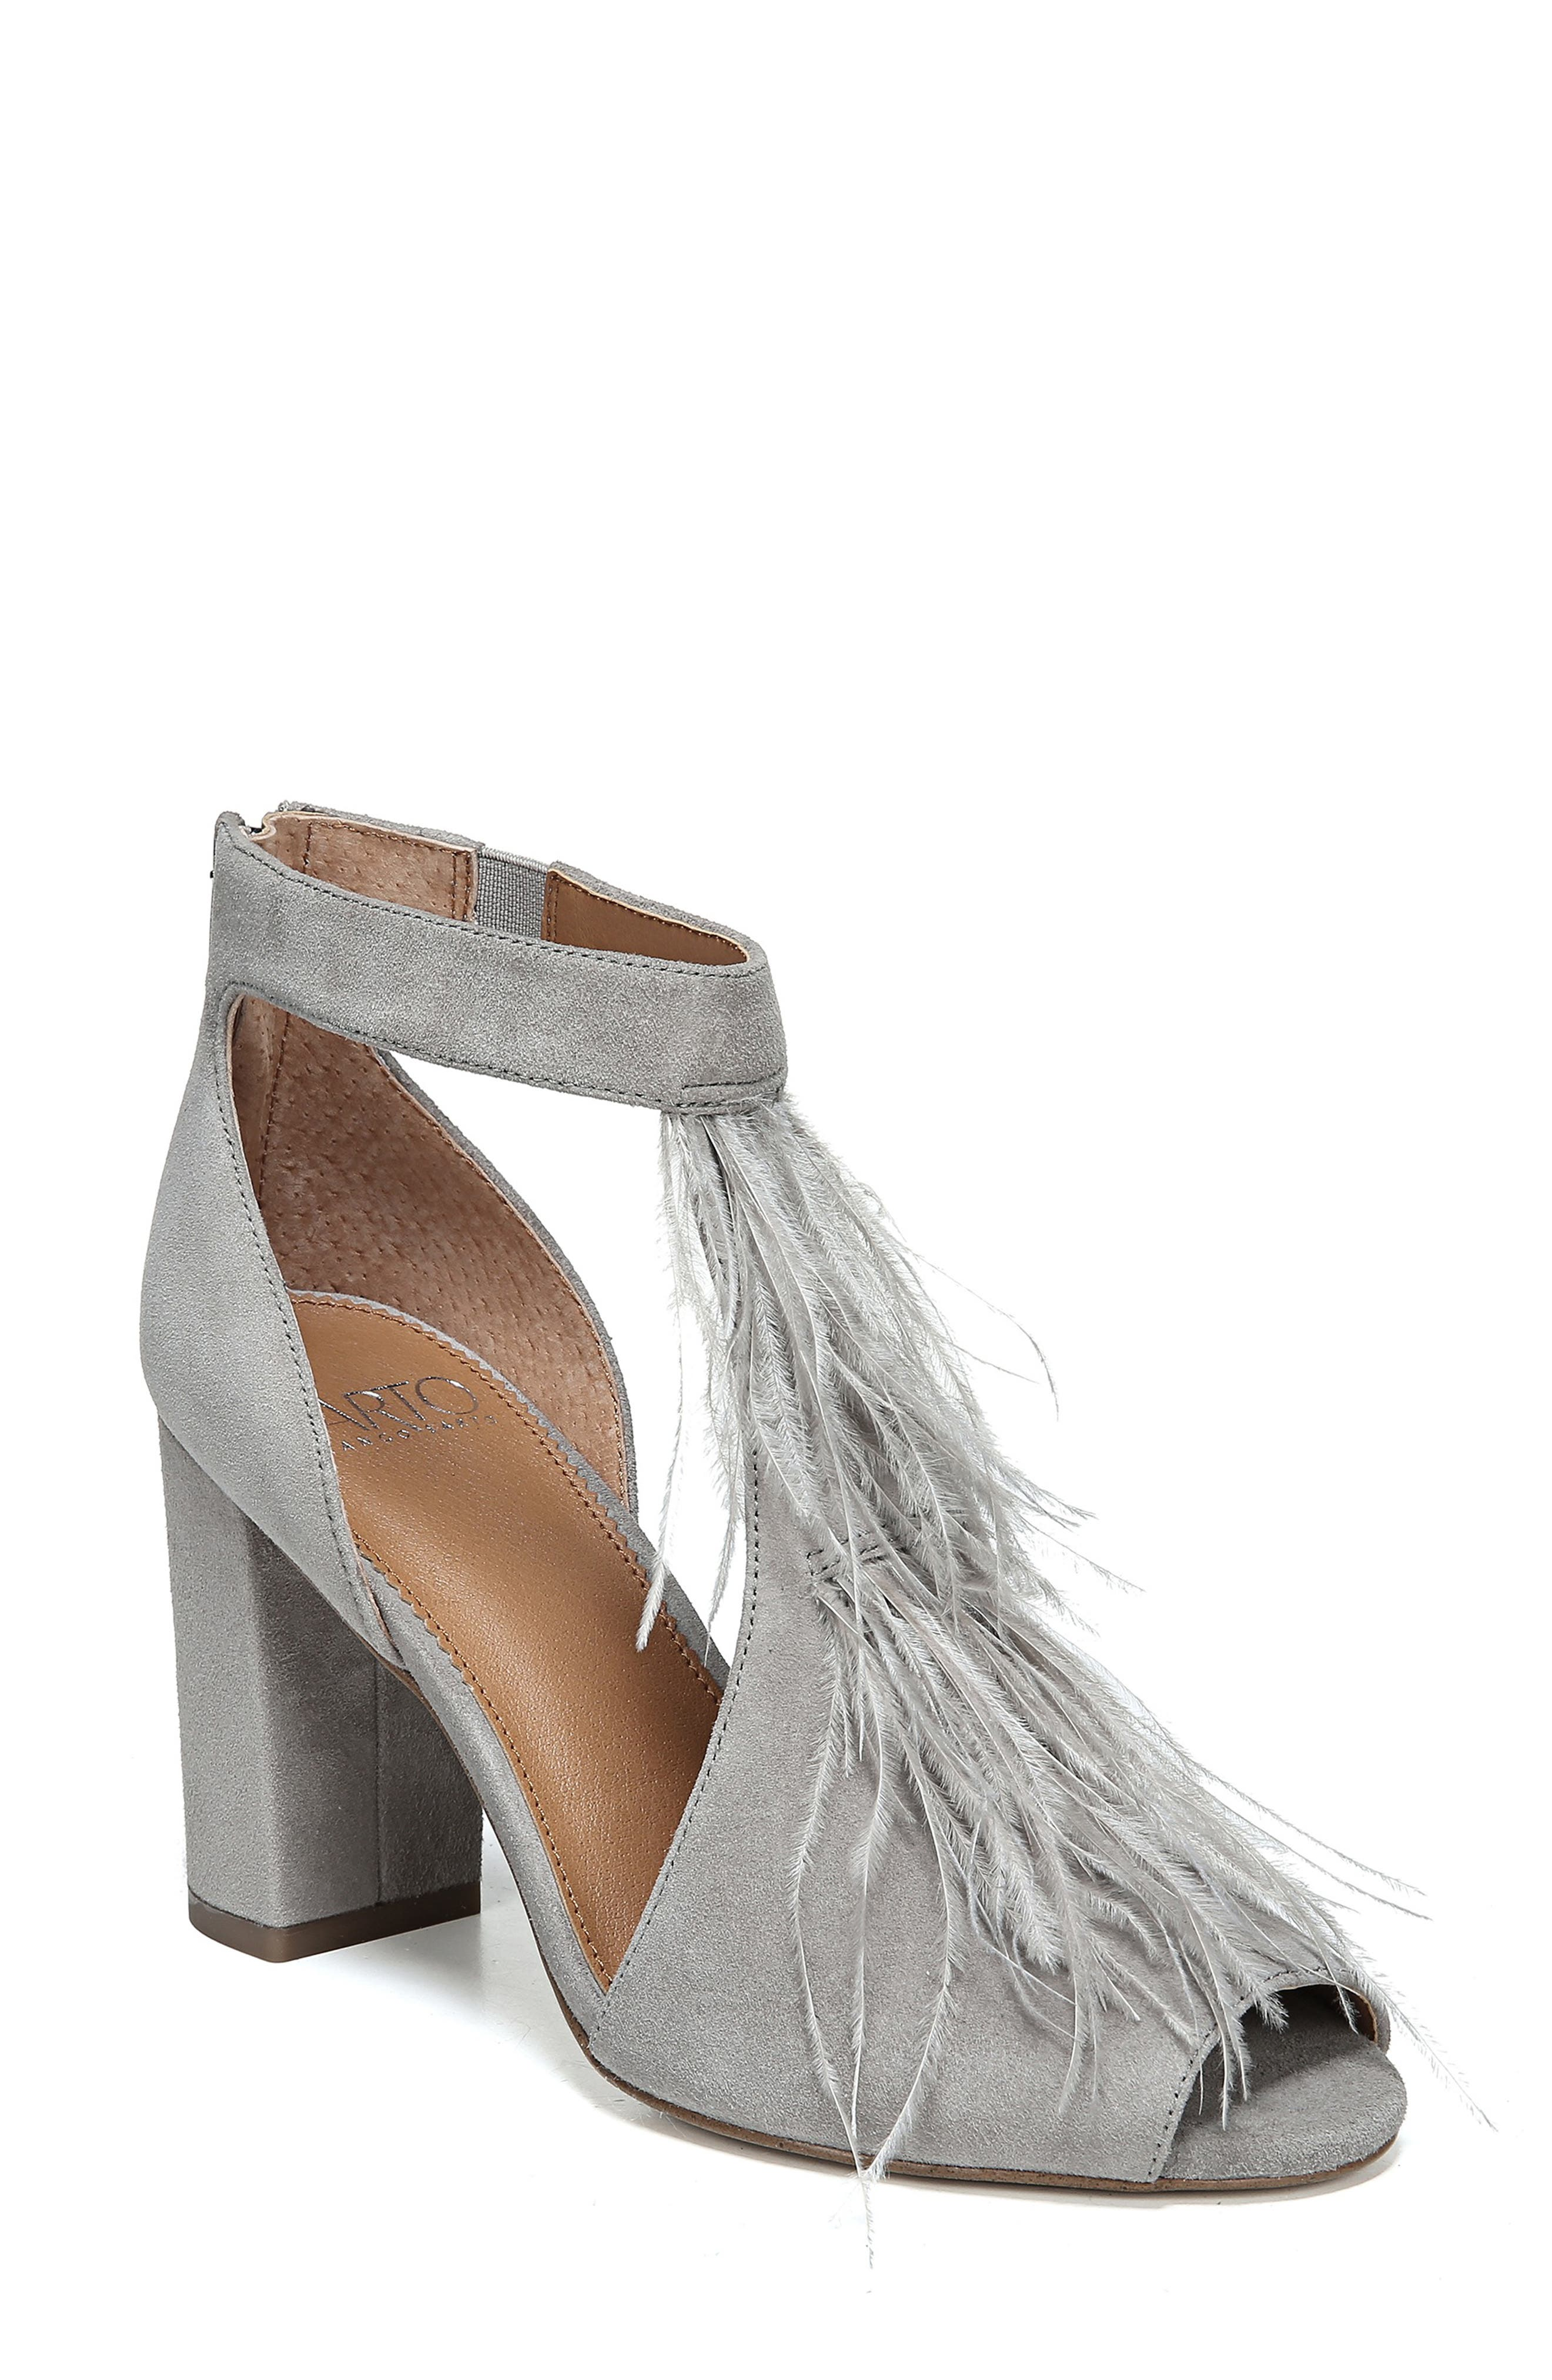 SARTO BY FRANCO SARTO Olivette Sandal, Main, color, GREYSTONE LEATHER